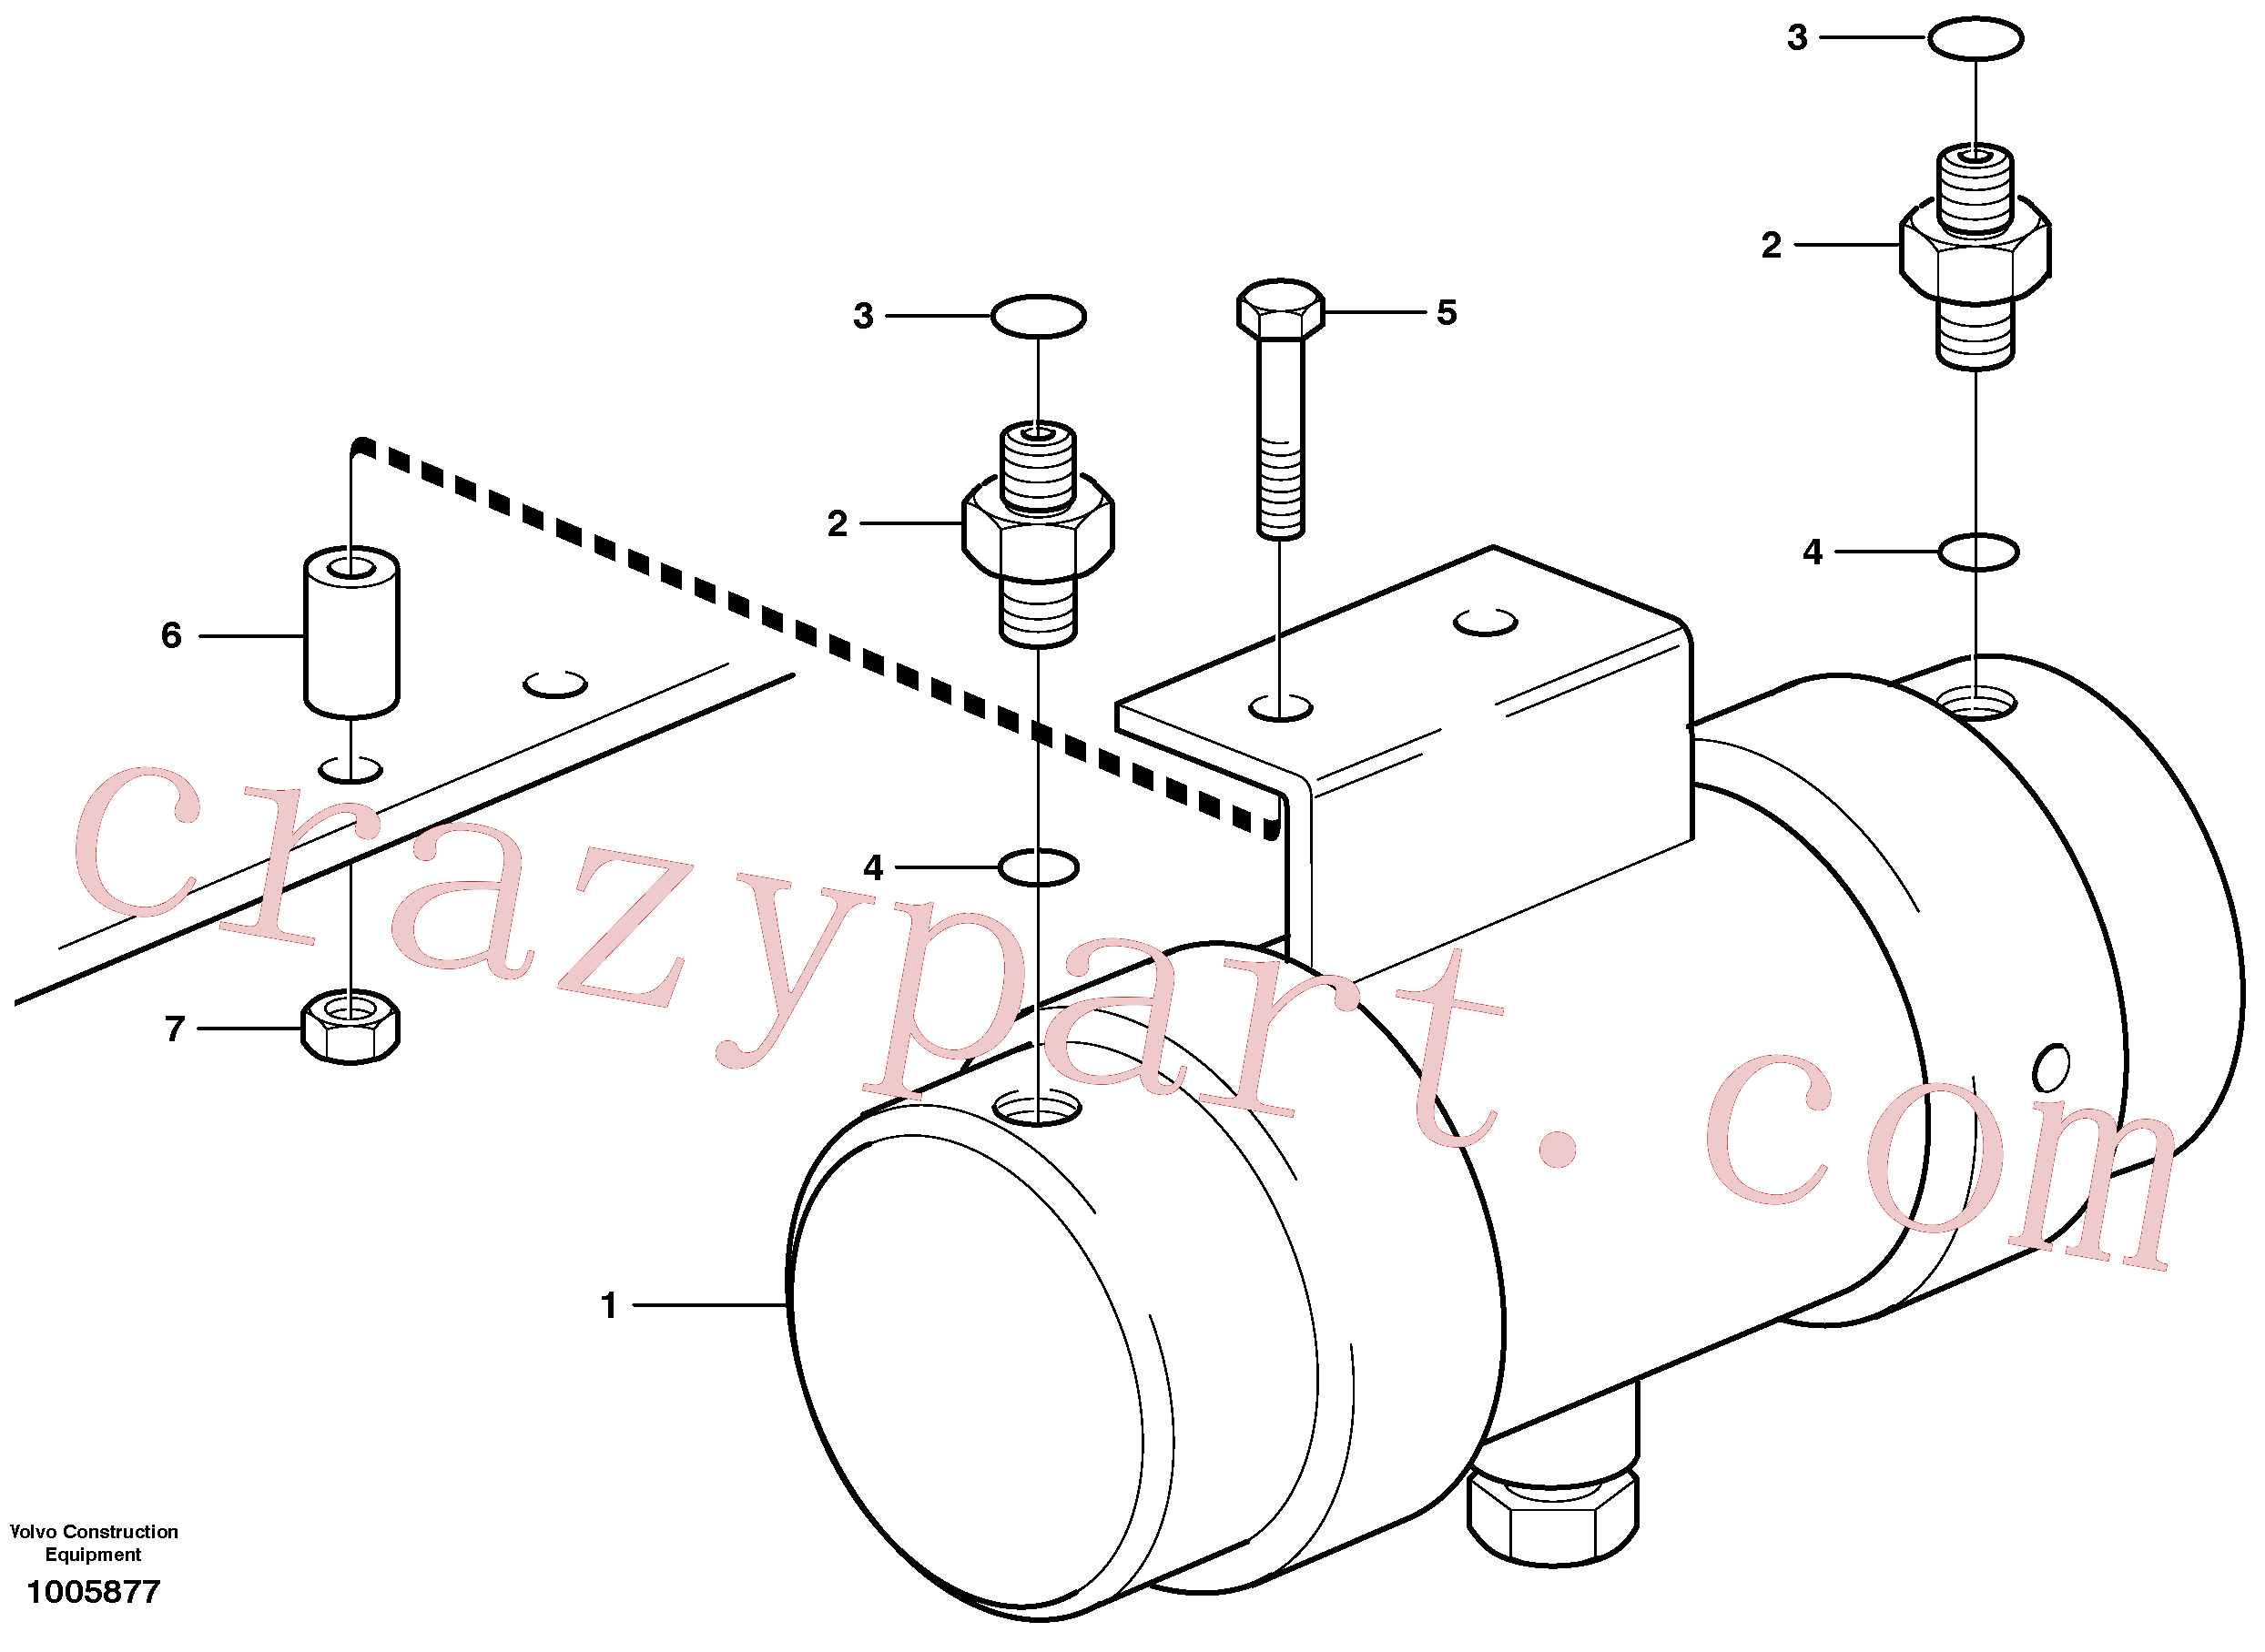 PJ5600200 for Volvo Damping cylinder with fitting parts(1005877 assembly)